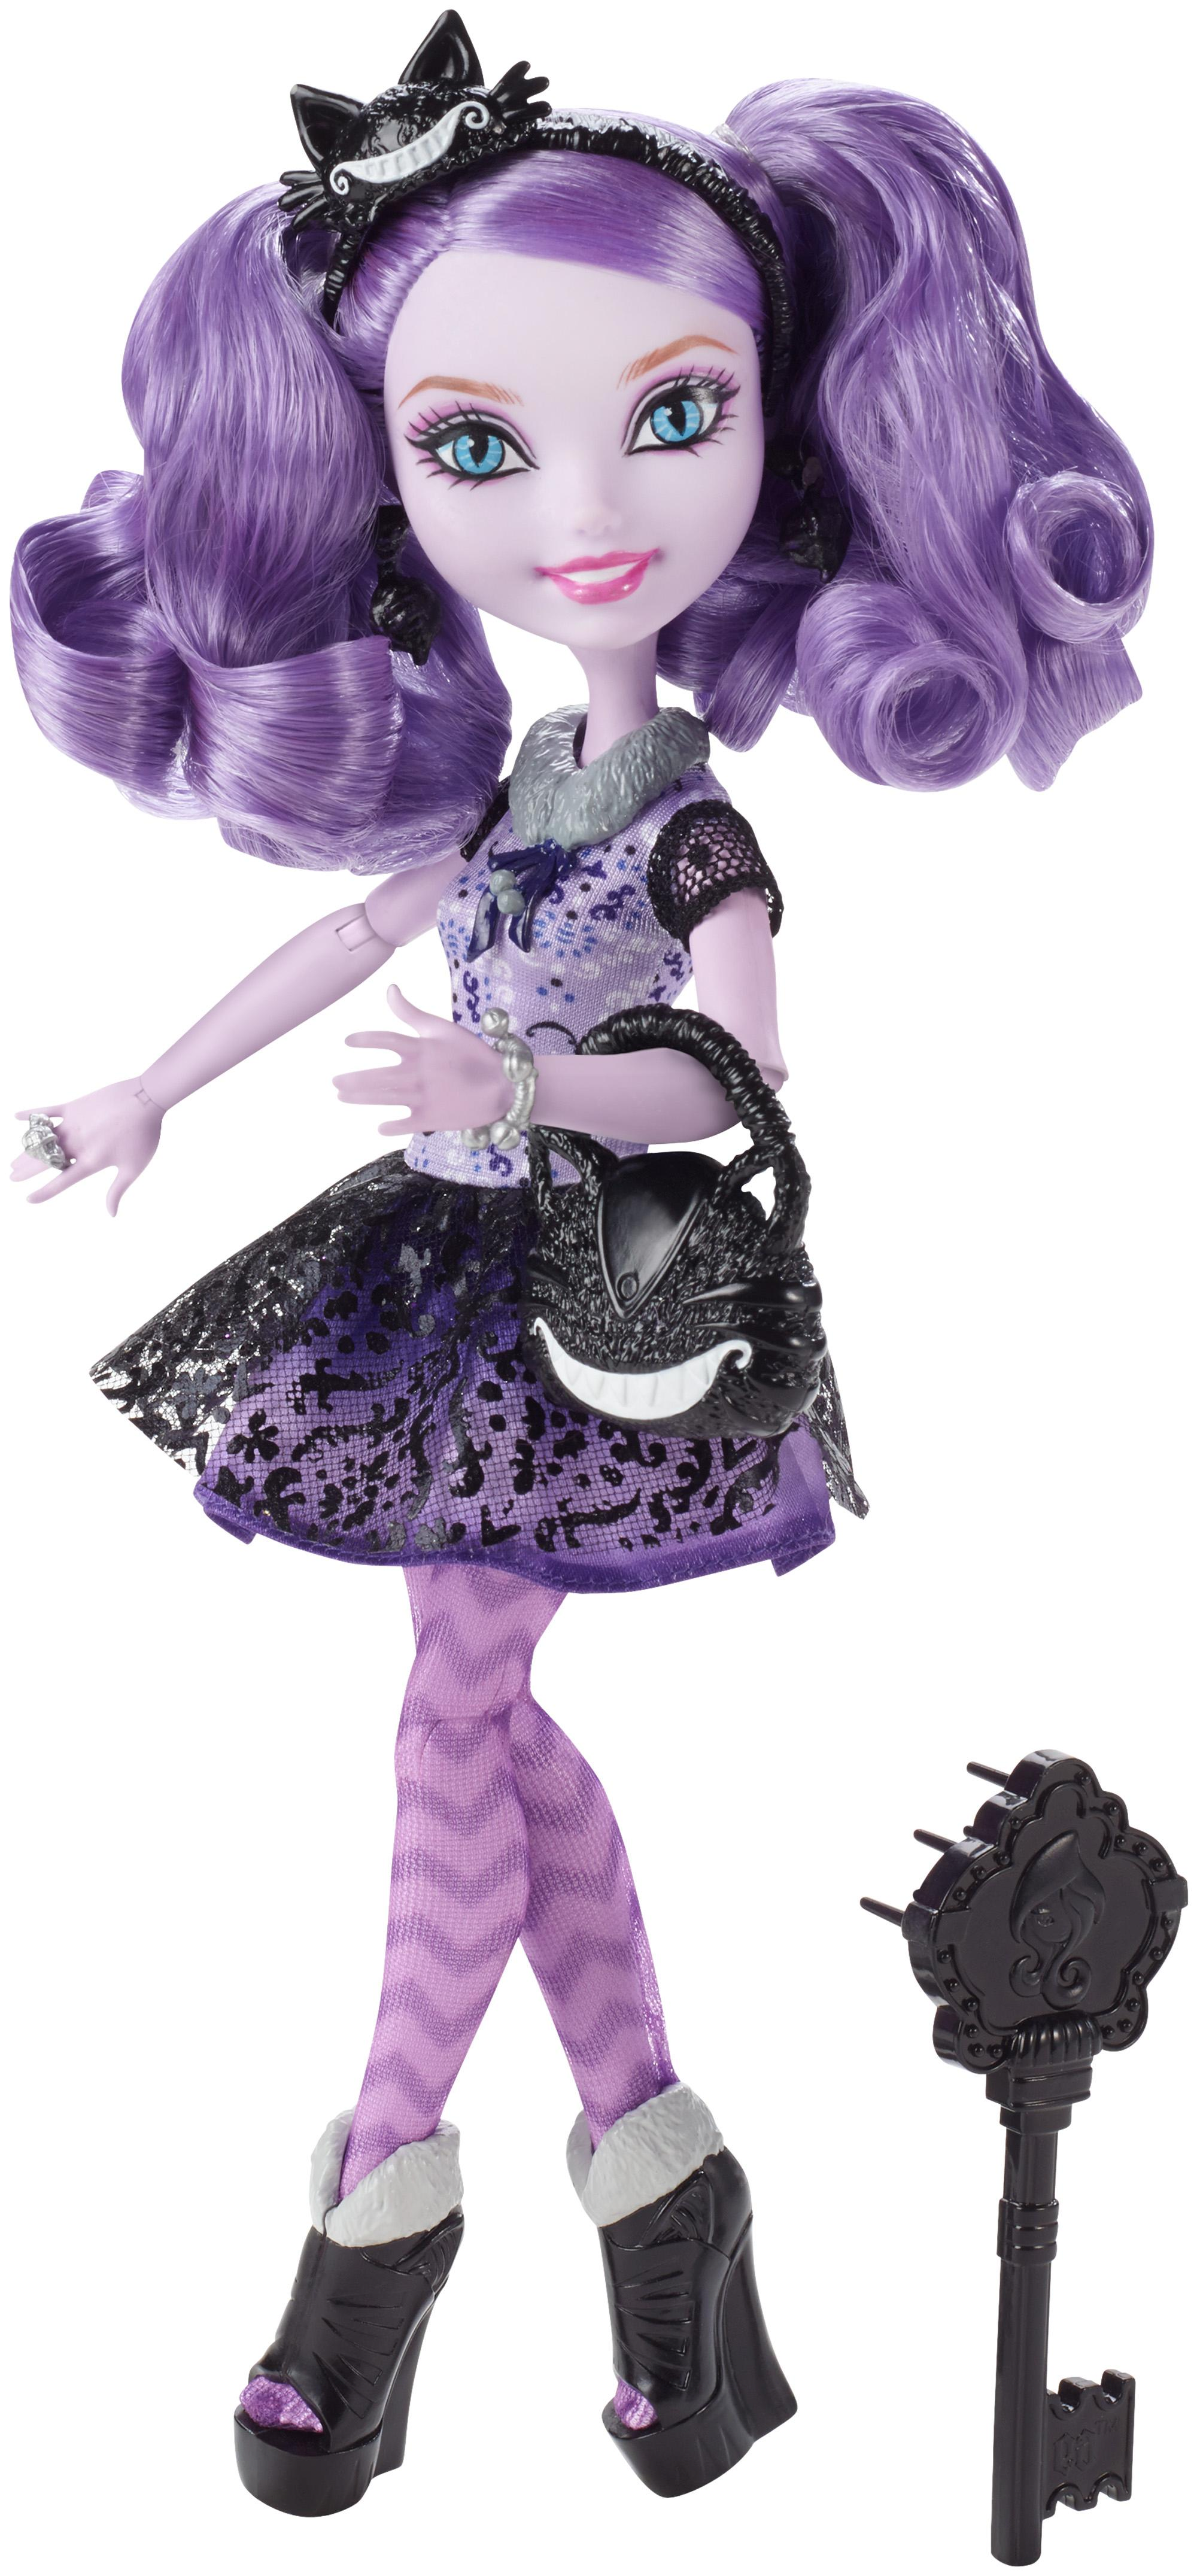 Amazon.com: Ever After High Kitty Cheshire Doll: Toys & Games